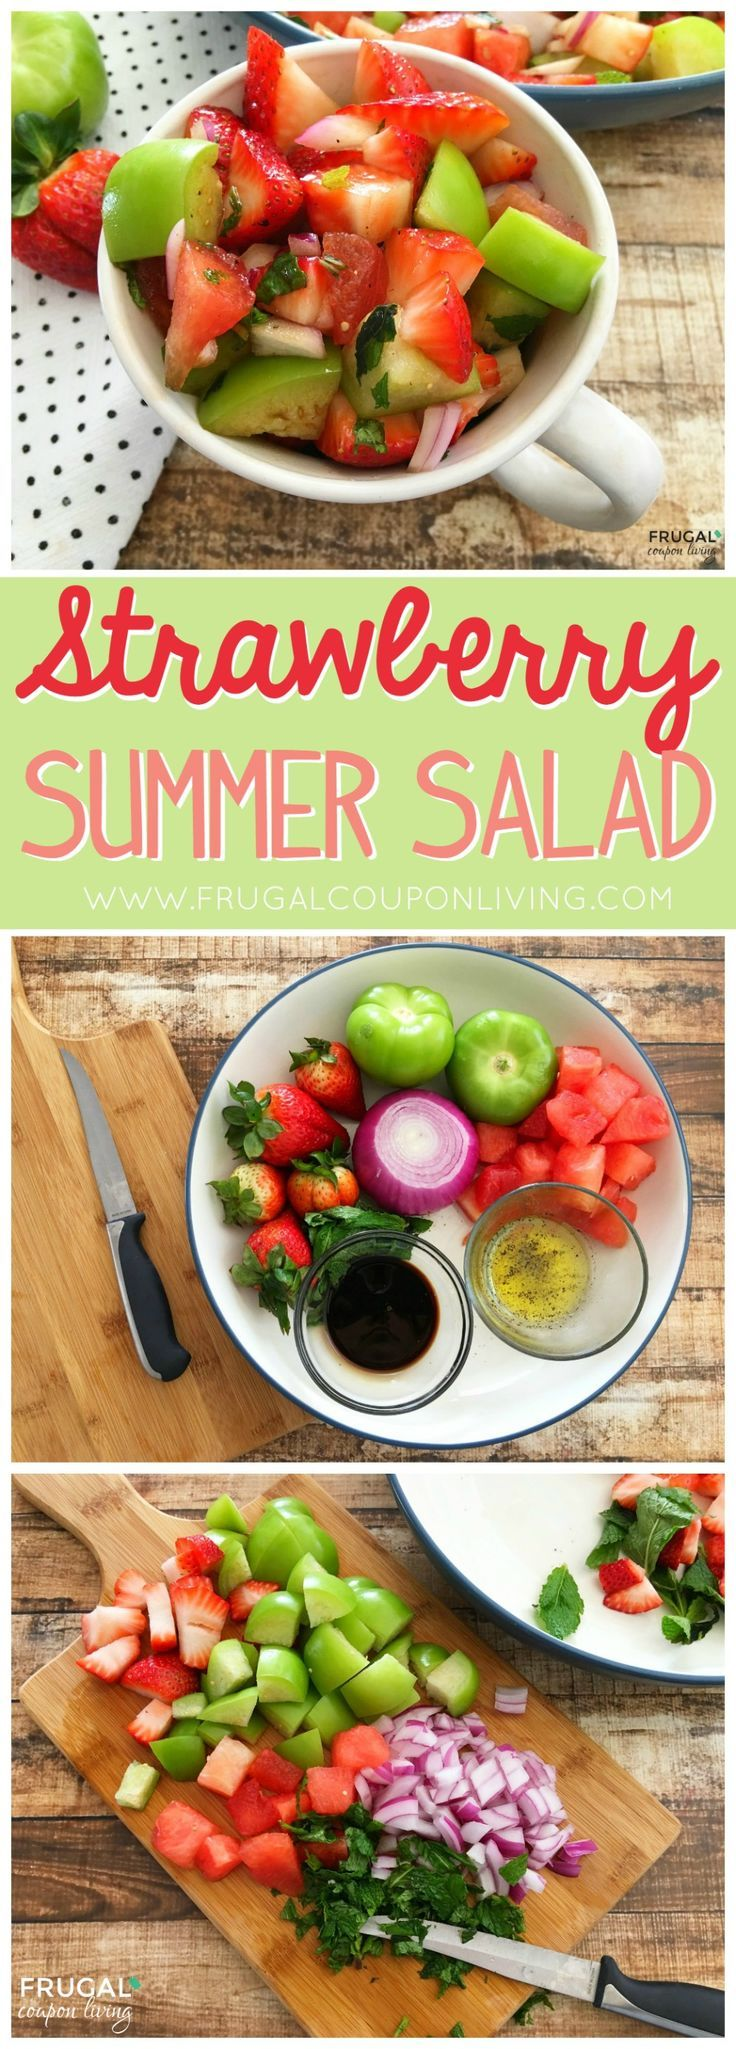 Summer Strawberry Salad with Watermelon, tomatillos, onions and more on Frugal C...